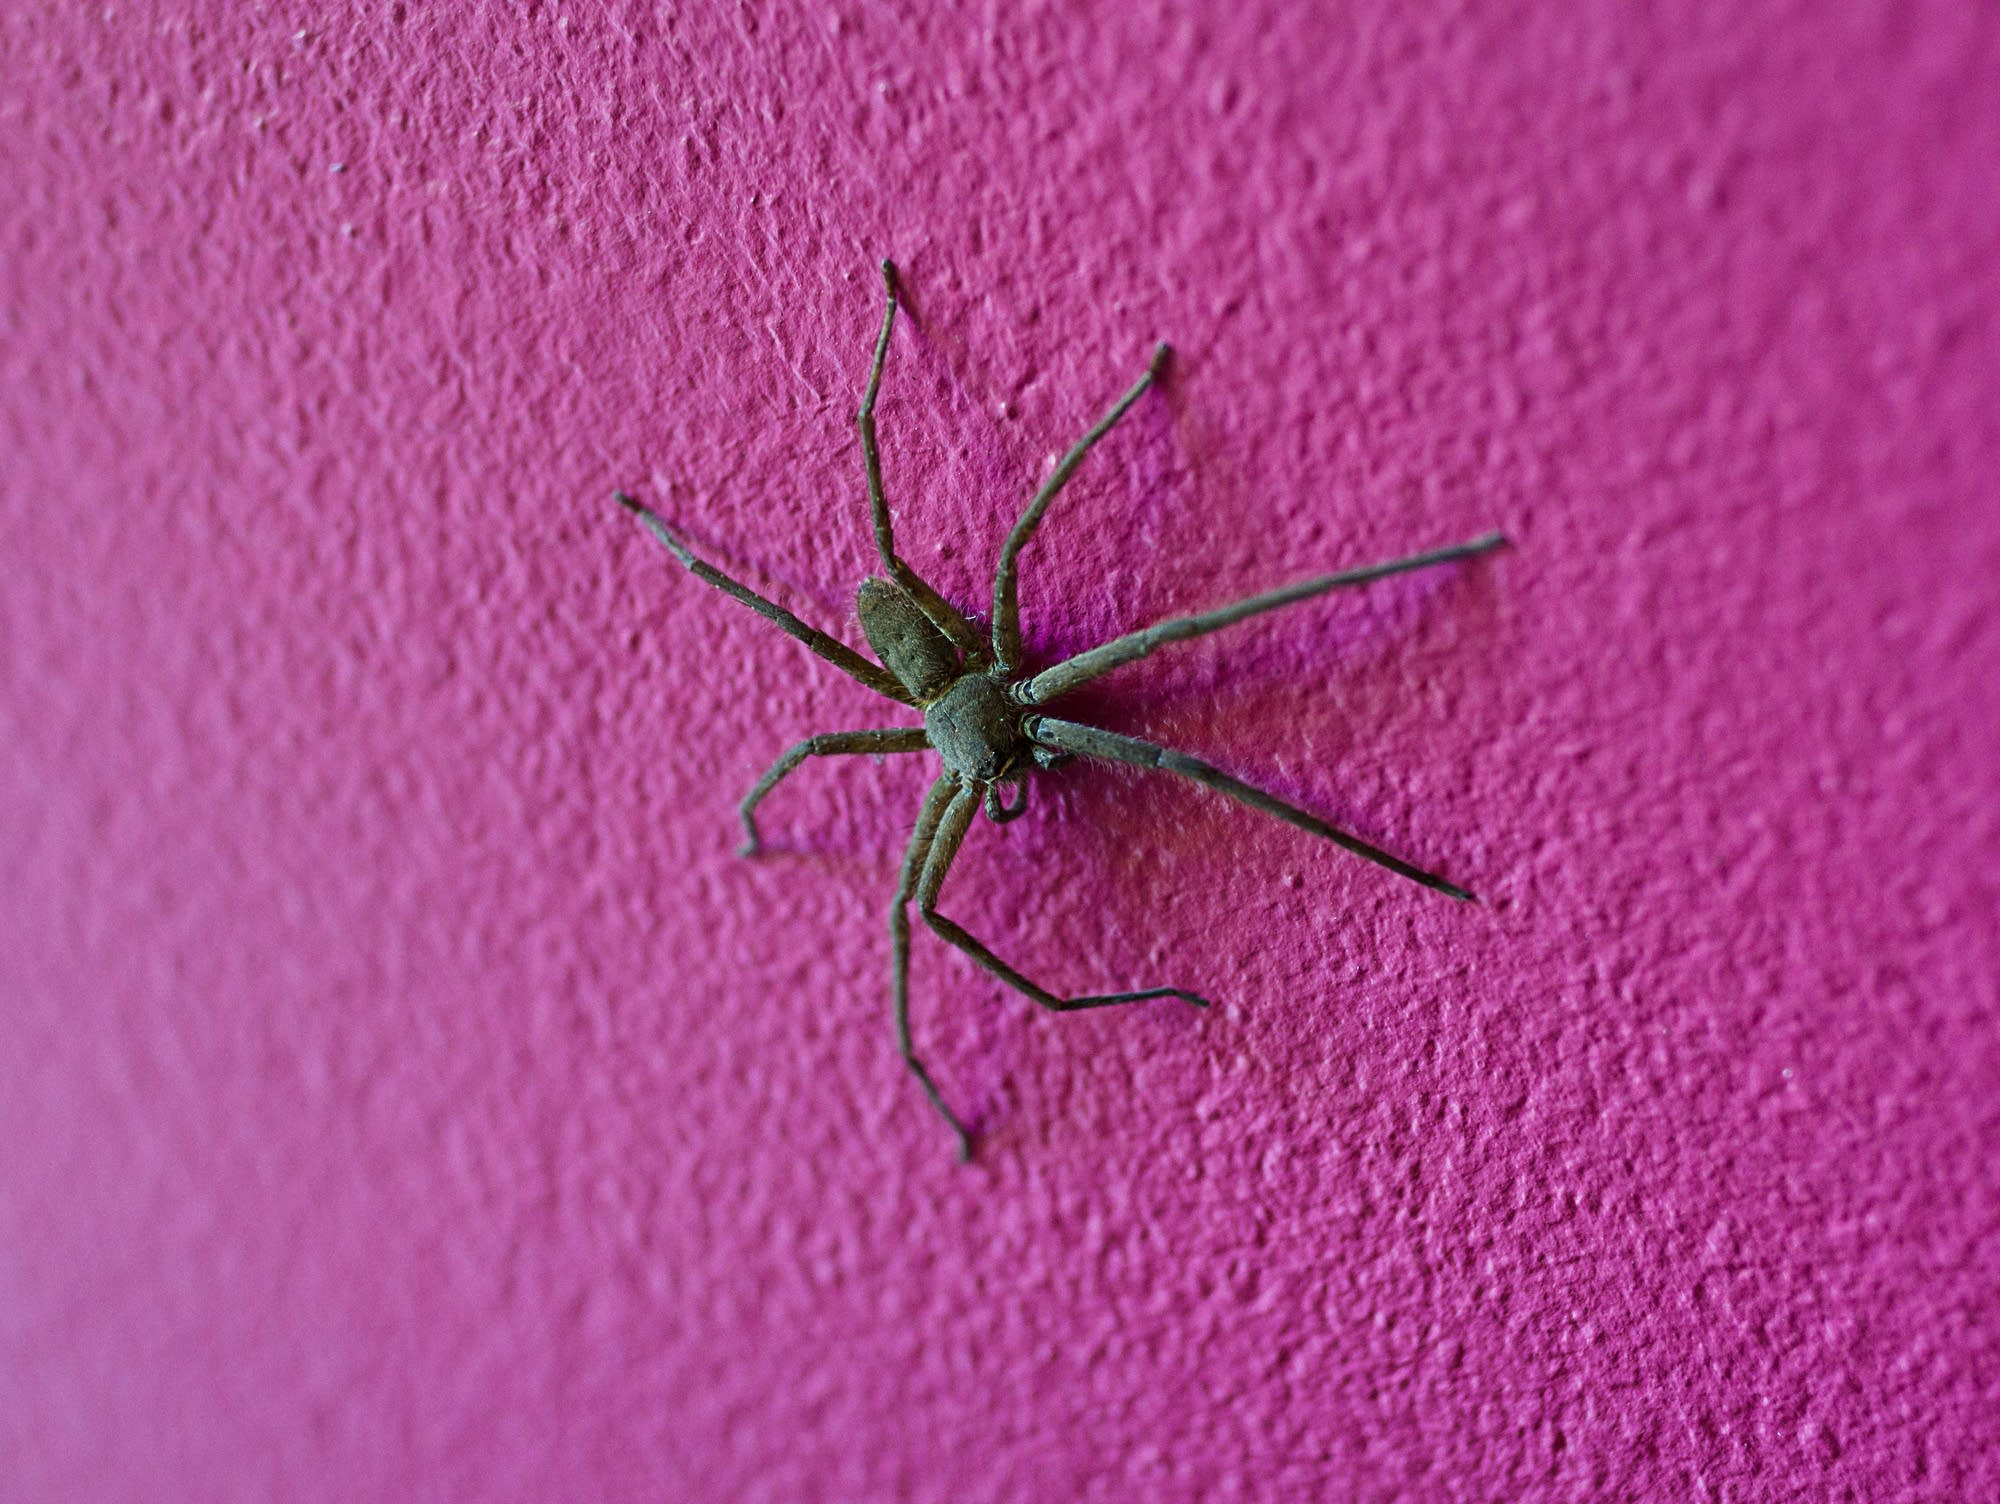 How do spiders walk on walls?